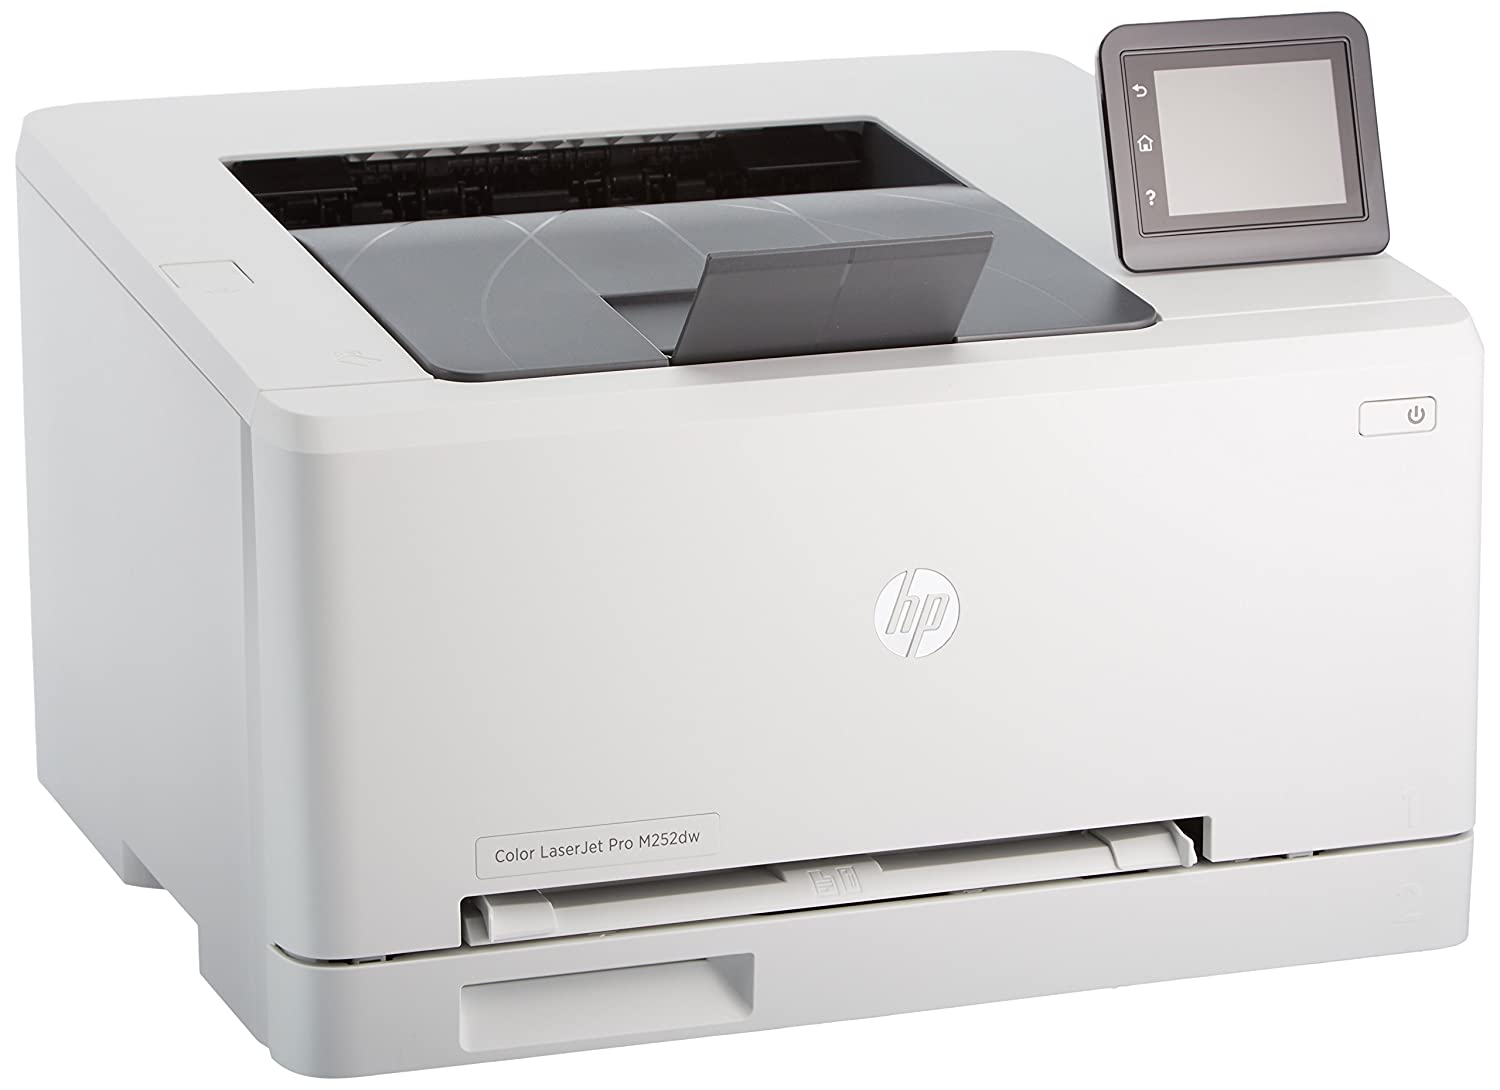 Eco-friendly and economical HP Photosmart 7260 printer 11